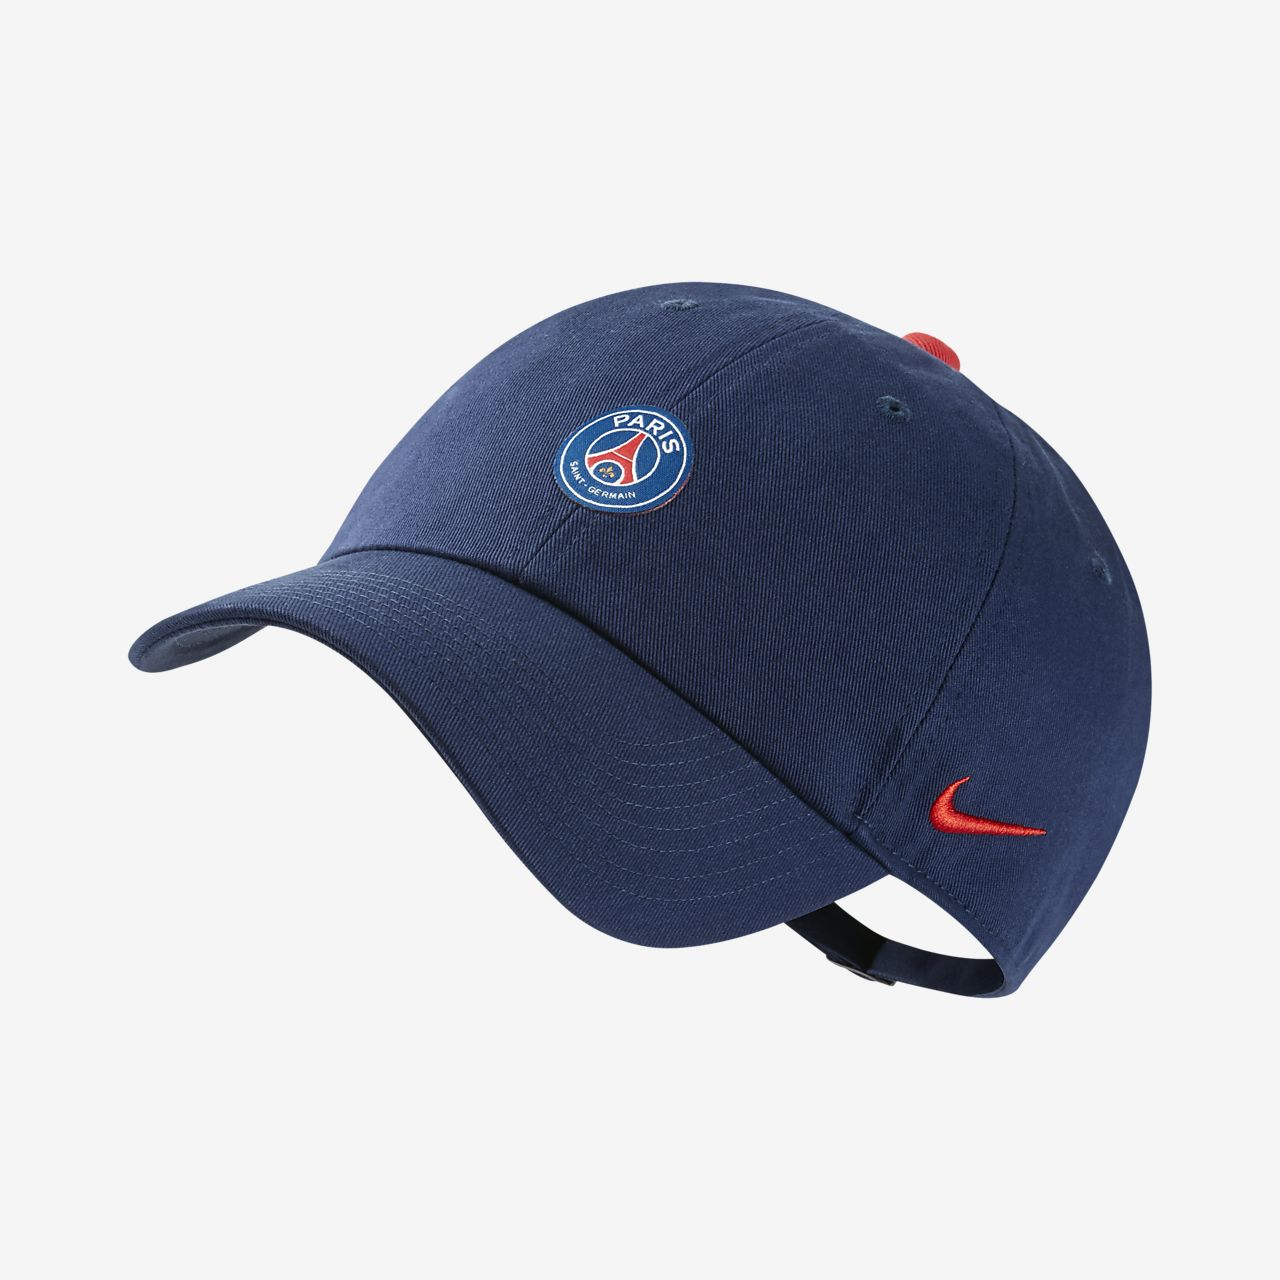 5e219554c88ef Gorro ajustable Paris Saint-Germain Heritage 86. Nike.com MX